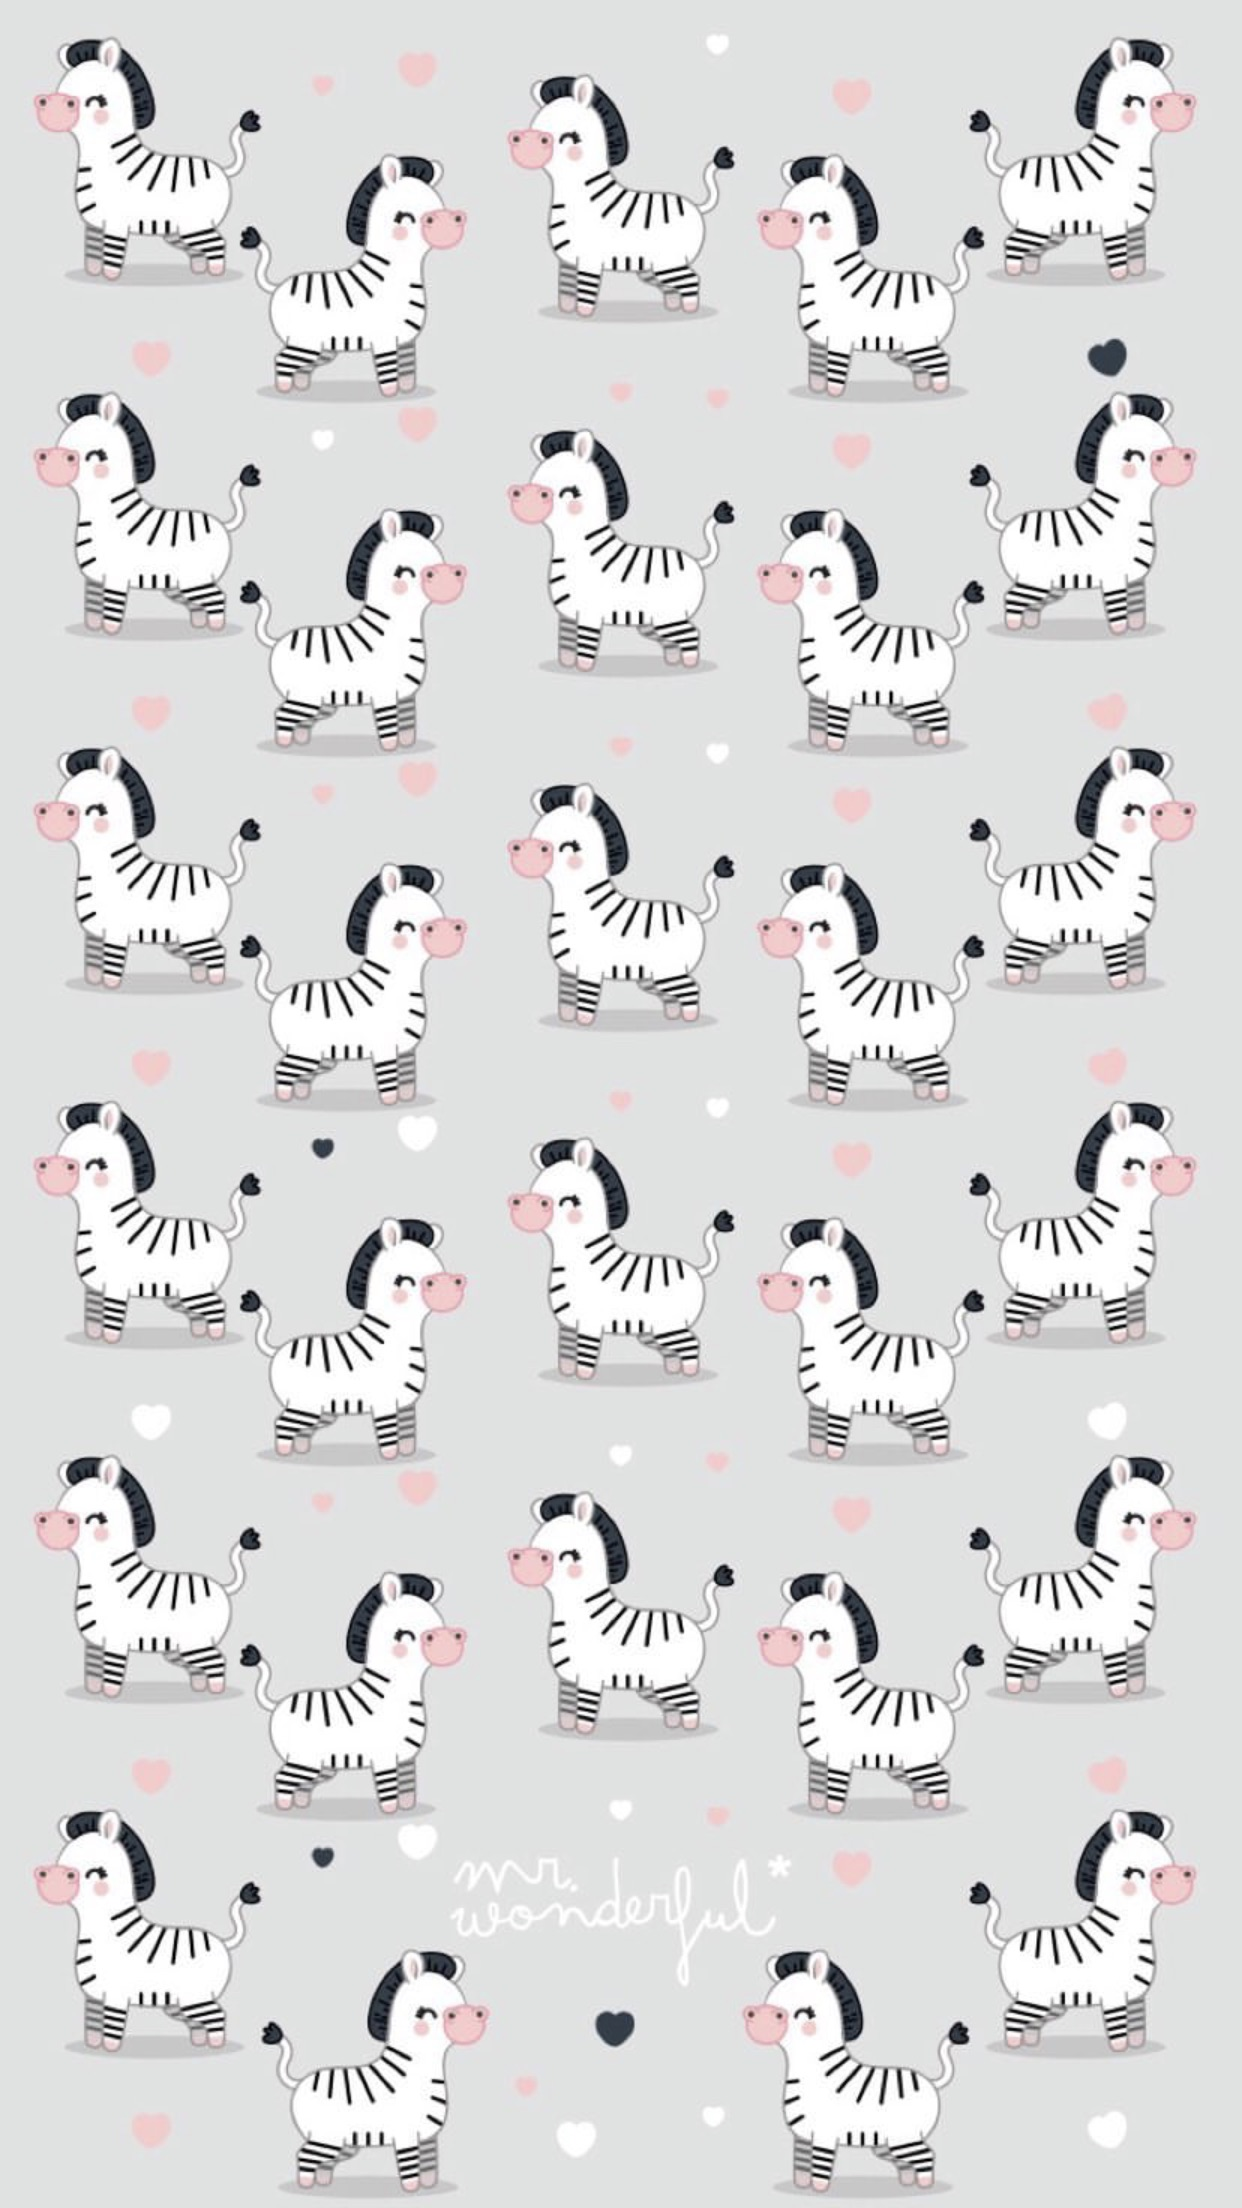 fondos de pantalla, fondo de pantalla, fondo de pantalla divertido, fondo de pantalla femenino, girly backgrounds, cool background, colorful backfround, fondo de pantalla patron, pattern, fondo de pantalla zebra, zebra background. autumn background, fondo de pantalla otoño.